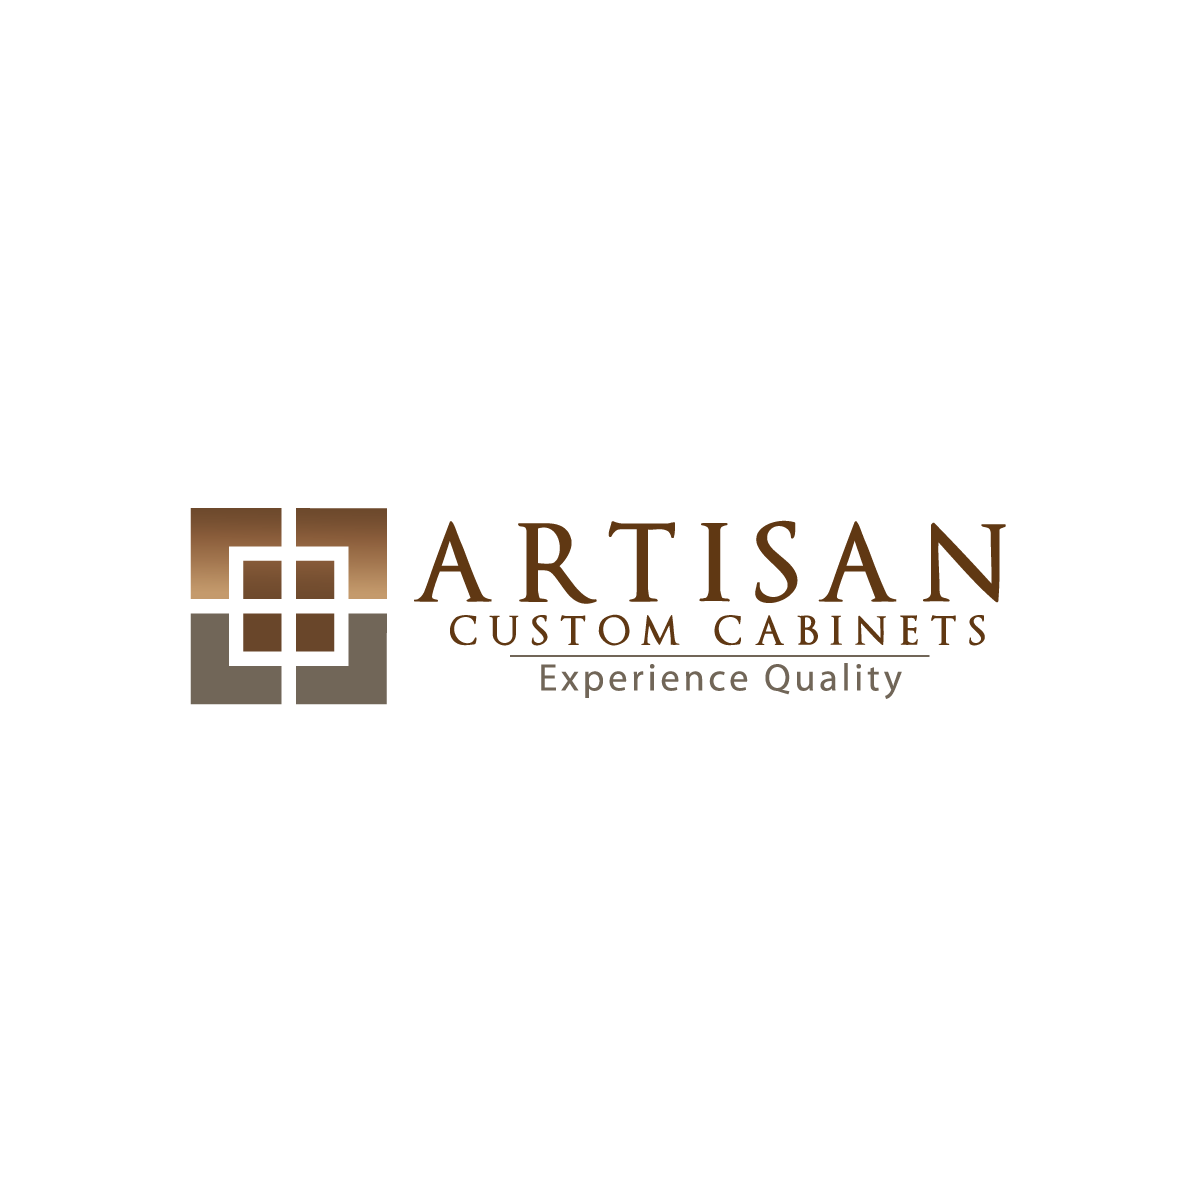 Logo Design by rockin - Entry No. 84 in the Logo Design Contest Creative Logo Design for Artisan Custom Cabinets.